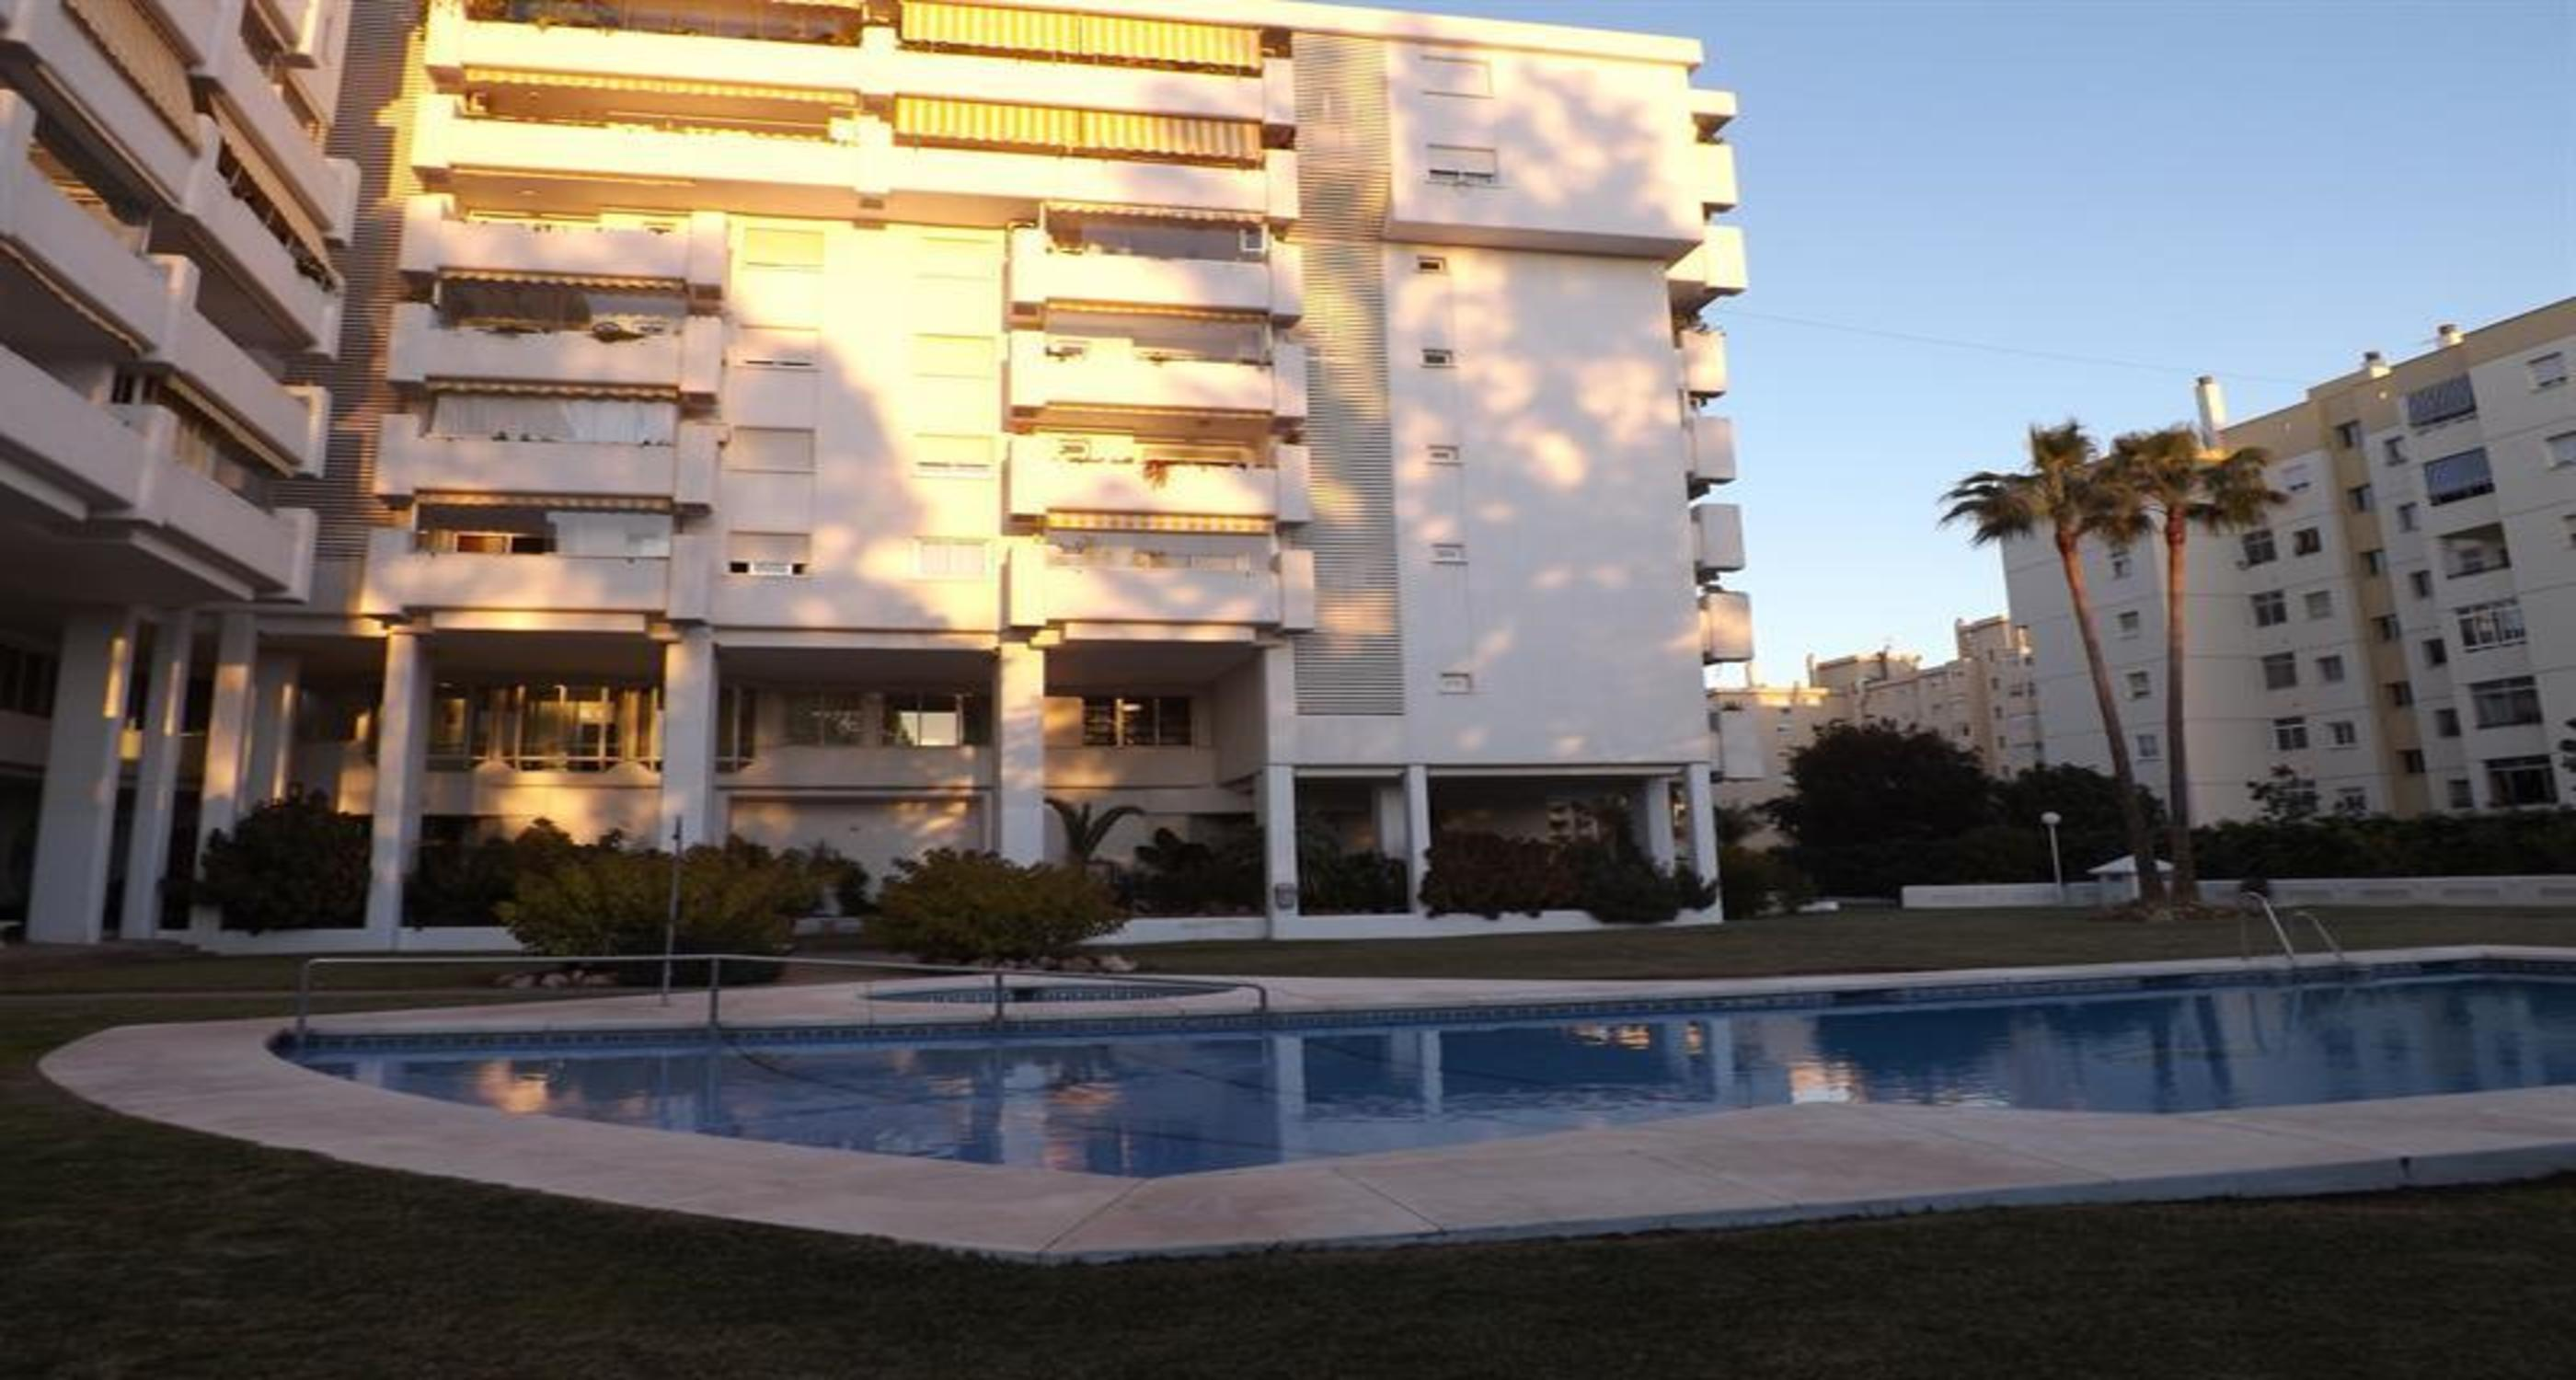 Ferienwohnung Apartment - 2 Bedrooms with Pool and WiFi - 104229 (2140293), Fuengirola, Costa del Sol, Andalusien, Spanien, Bild 11